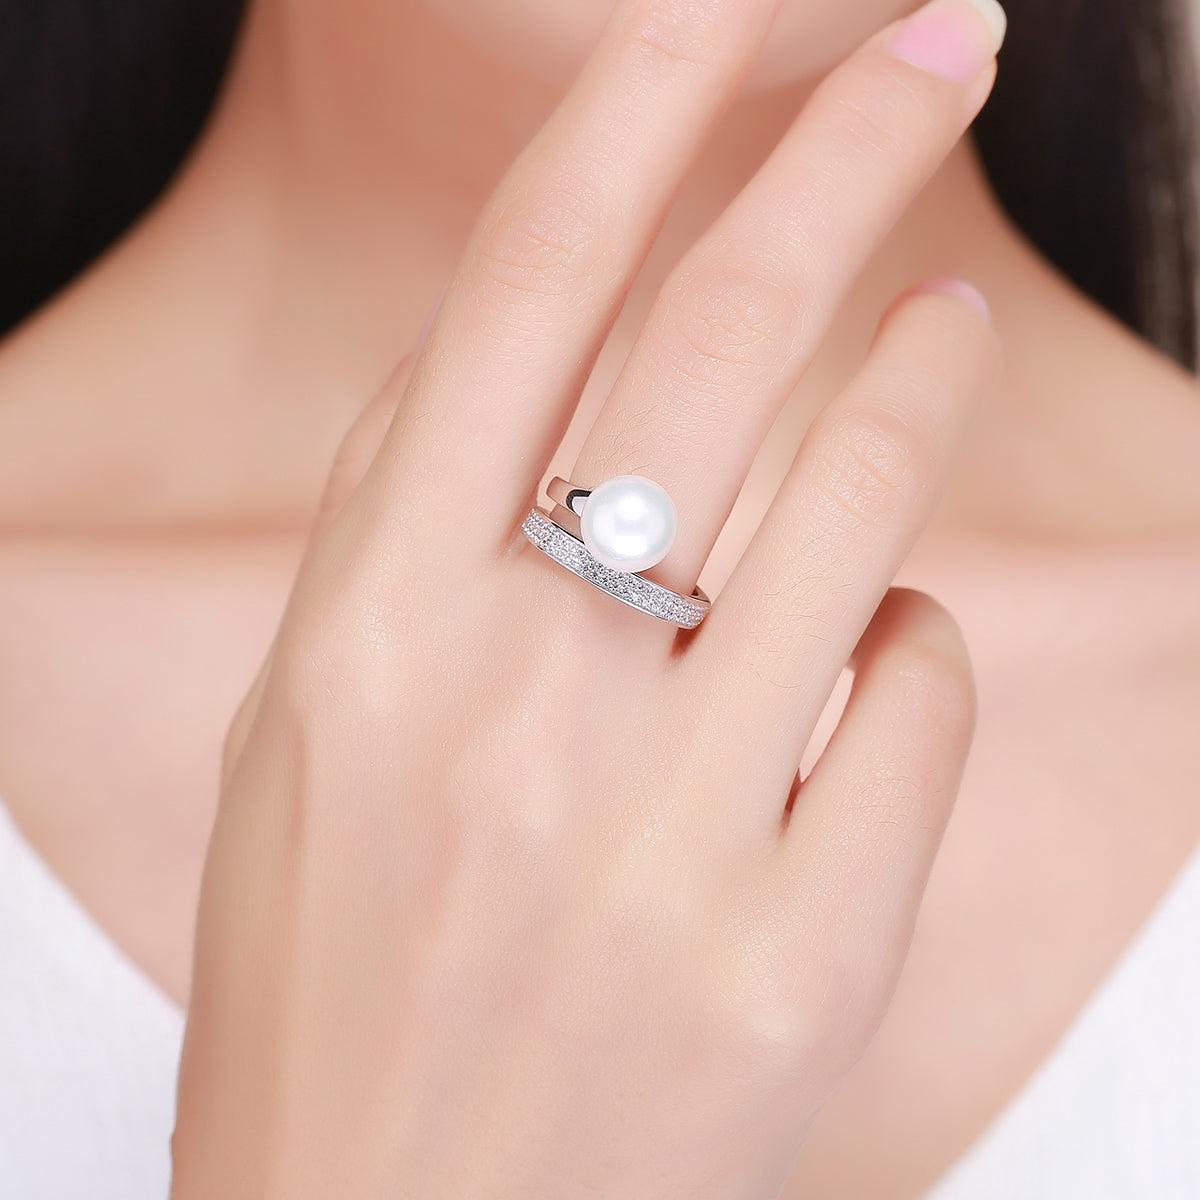 rings jewelry products cubic promise circle gift stackable clear silver engagement women sterling for zircon wedding geometric